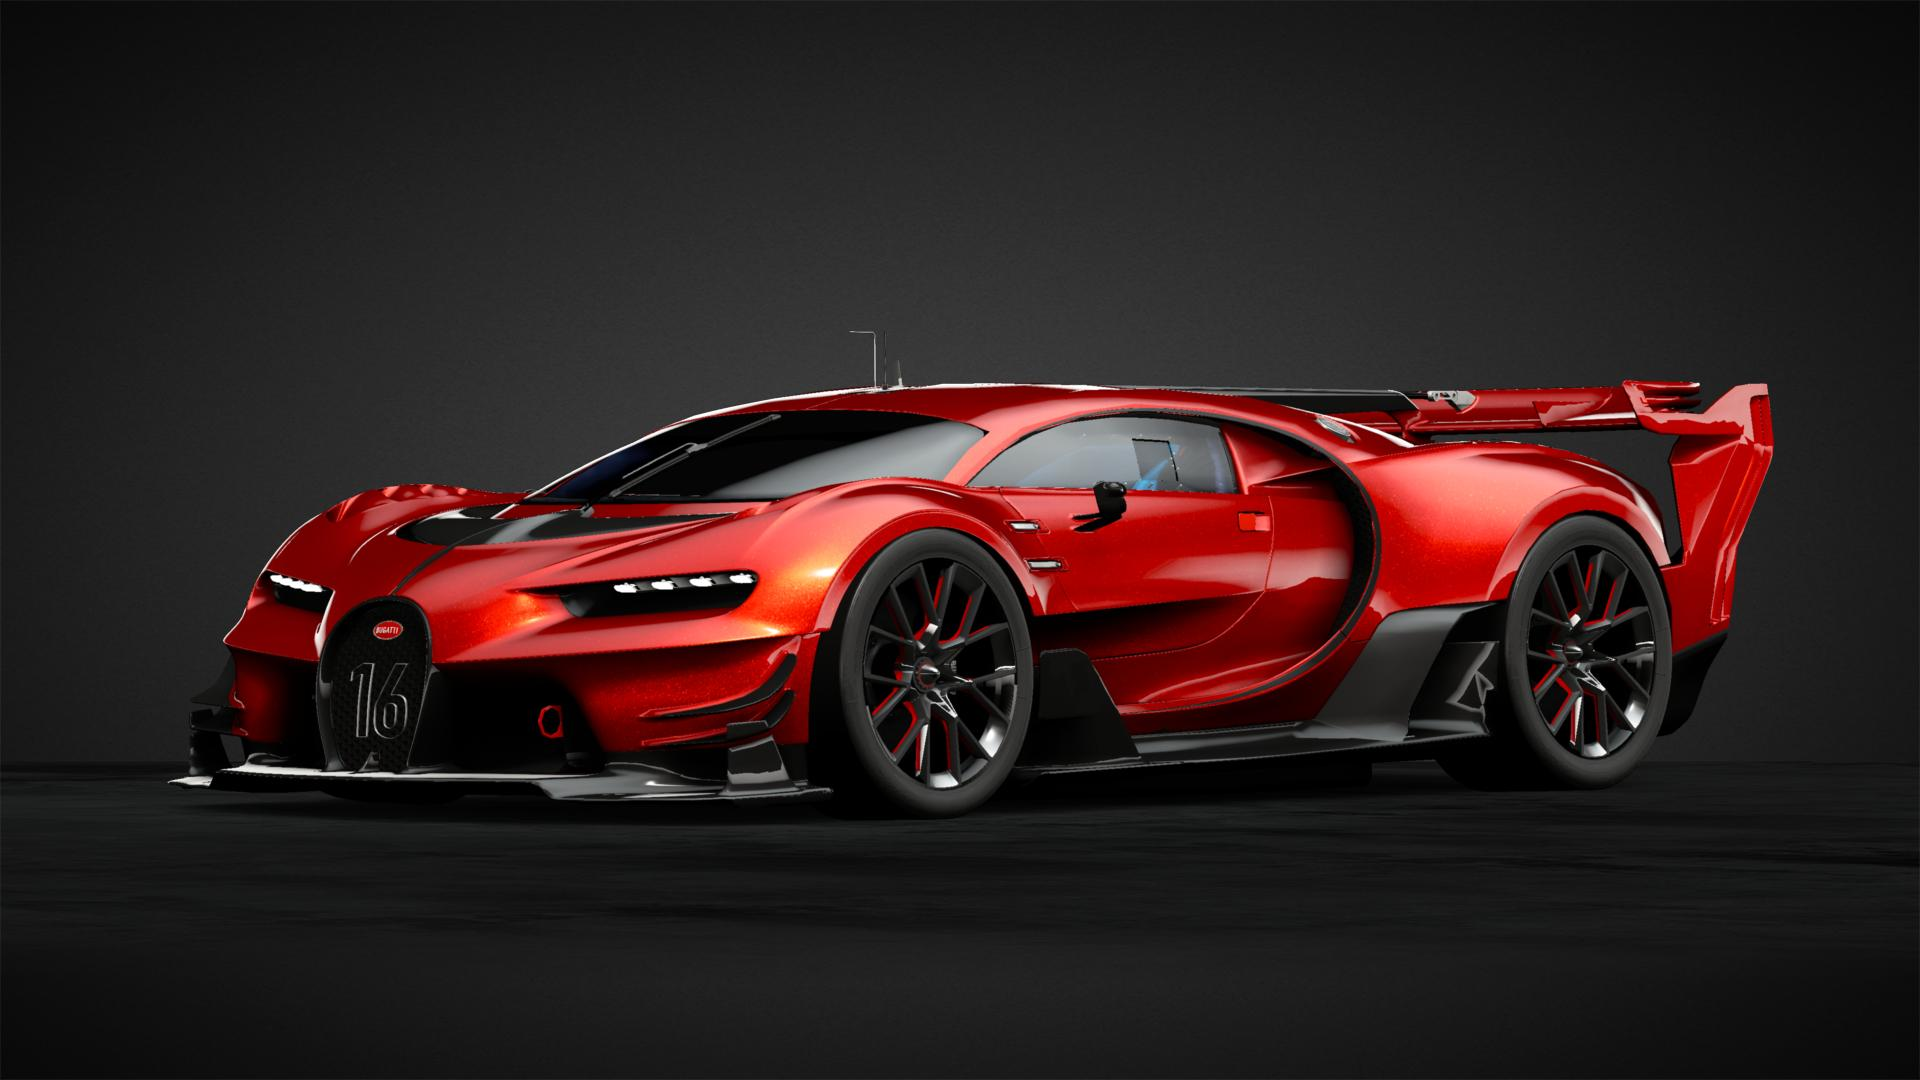 8c98efbf3 Bugatti Vision GT in a flaky red - Car Livery by rogholmesPNE1880 ...